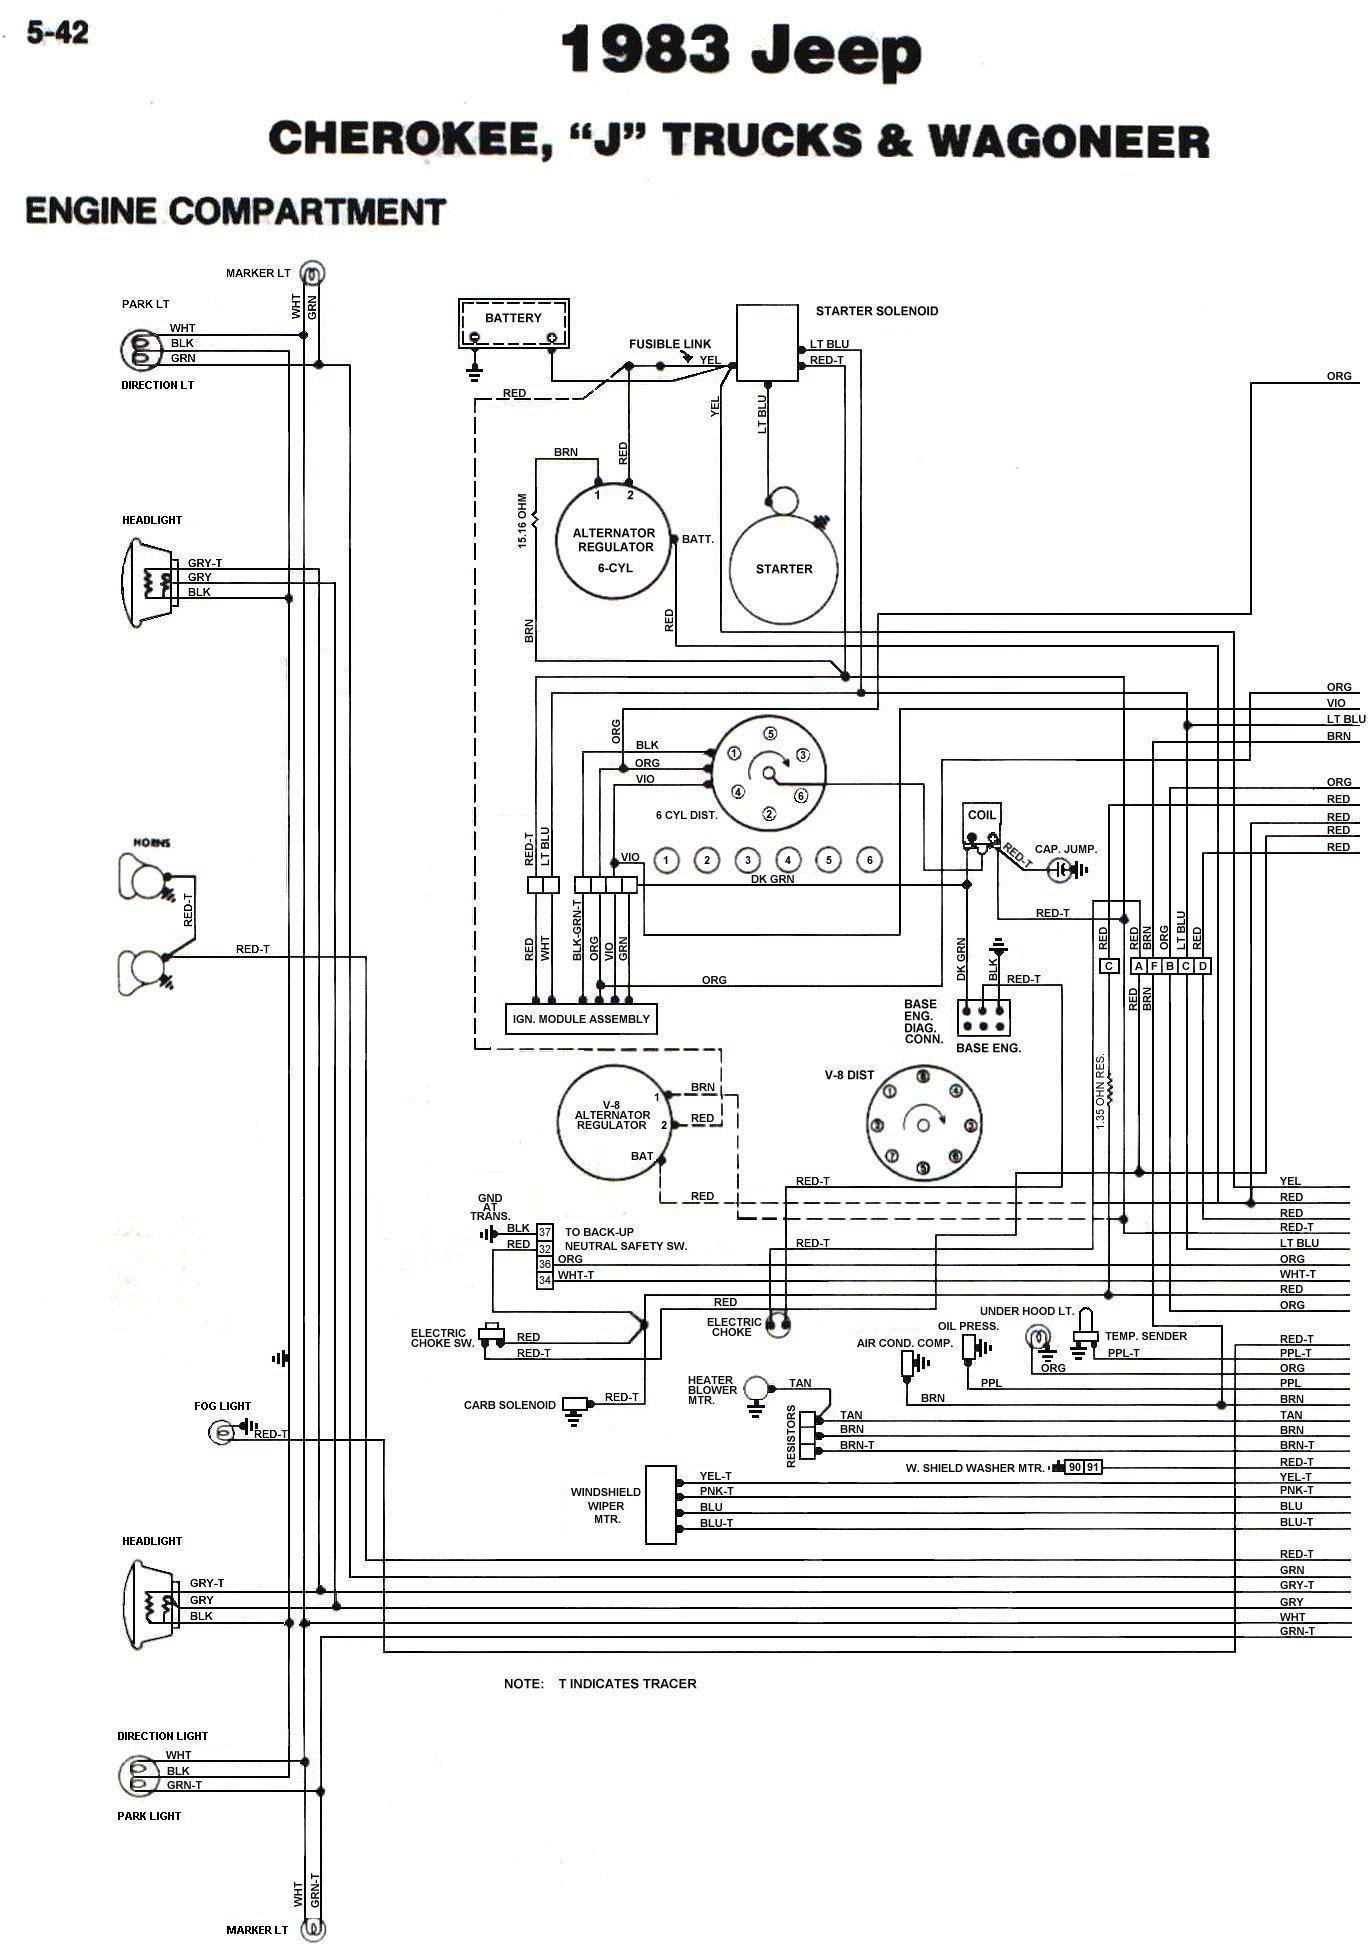 Jeep Cj Engine Wiring Diagram on 1975 jeep cj5 wiring diagram, 1977 jeep cj5 brake line diagram, 1973 jeep cj5 wiring diagram, cj5 fuel gauge wiring diagram, 1977 jeep j10 wiring diagram, 1978 jeep cj5 wiring diagram, 1967 jeep cj5 wiring diagram, 1977 jeep cherokee chief wiring diagram, 1976 jeep wiring diagram, 1971 jeep cj5 wiring diagram, painless wiring diagram, jeep cj5 dash wiring diagram, 1981 jeep cj5 wiring diagram, 1994 jeep wrangler wiring diagram, 1983 jeep cj5 wiring diagram, 1955 jeep cj5 wiring diagram, 1974 jeep cj5 wiring diagram, 1977 cj7 fuse diagram, jeep cj7 fuse box diagram, 1980 jeep cj5 wiring diagram,